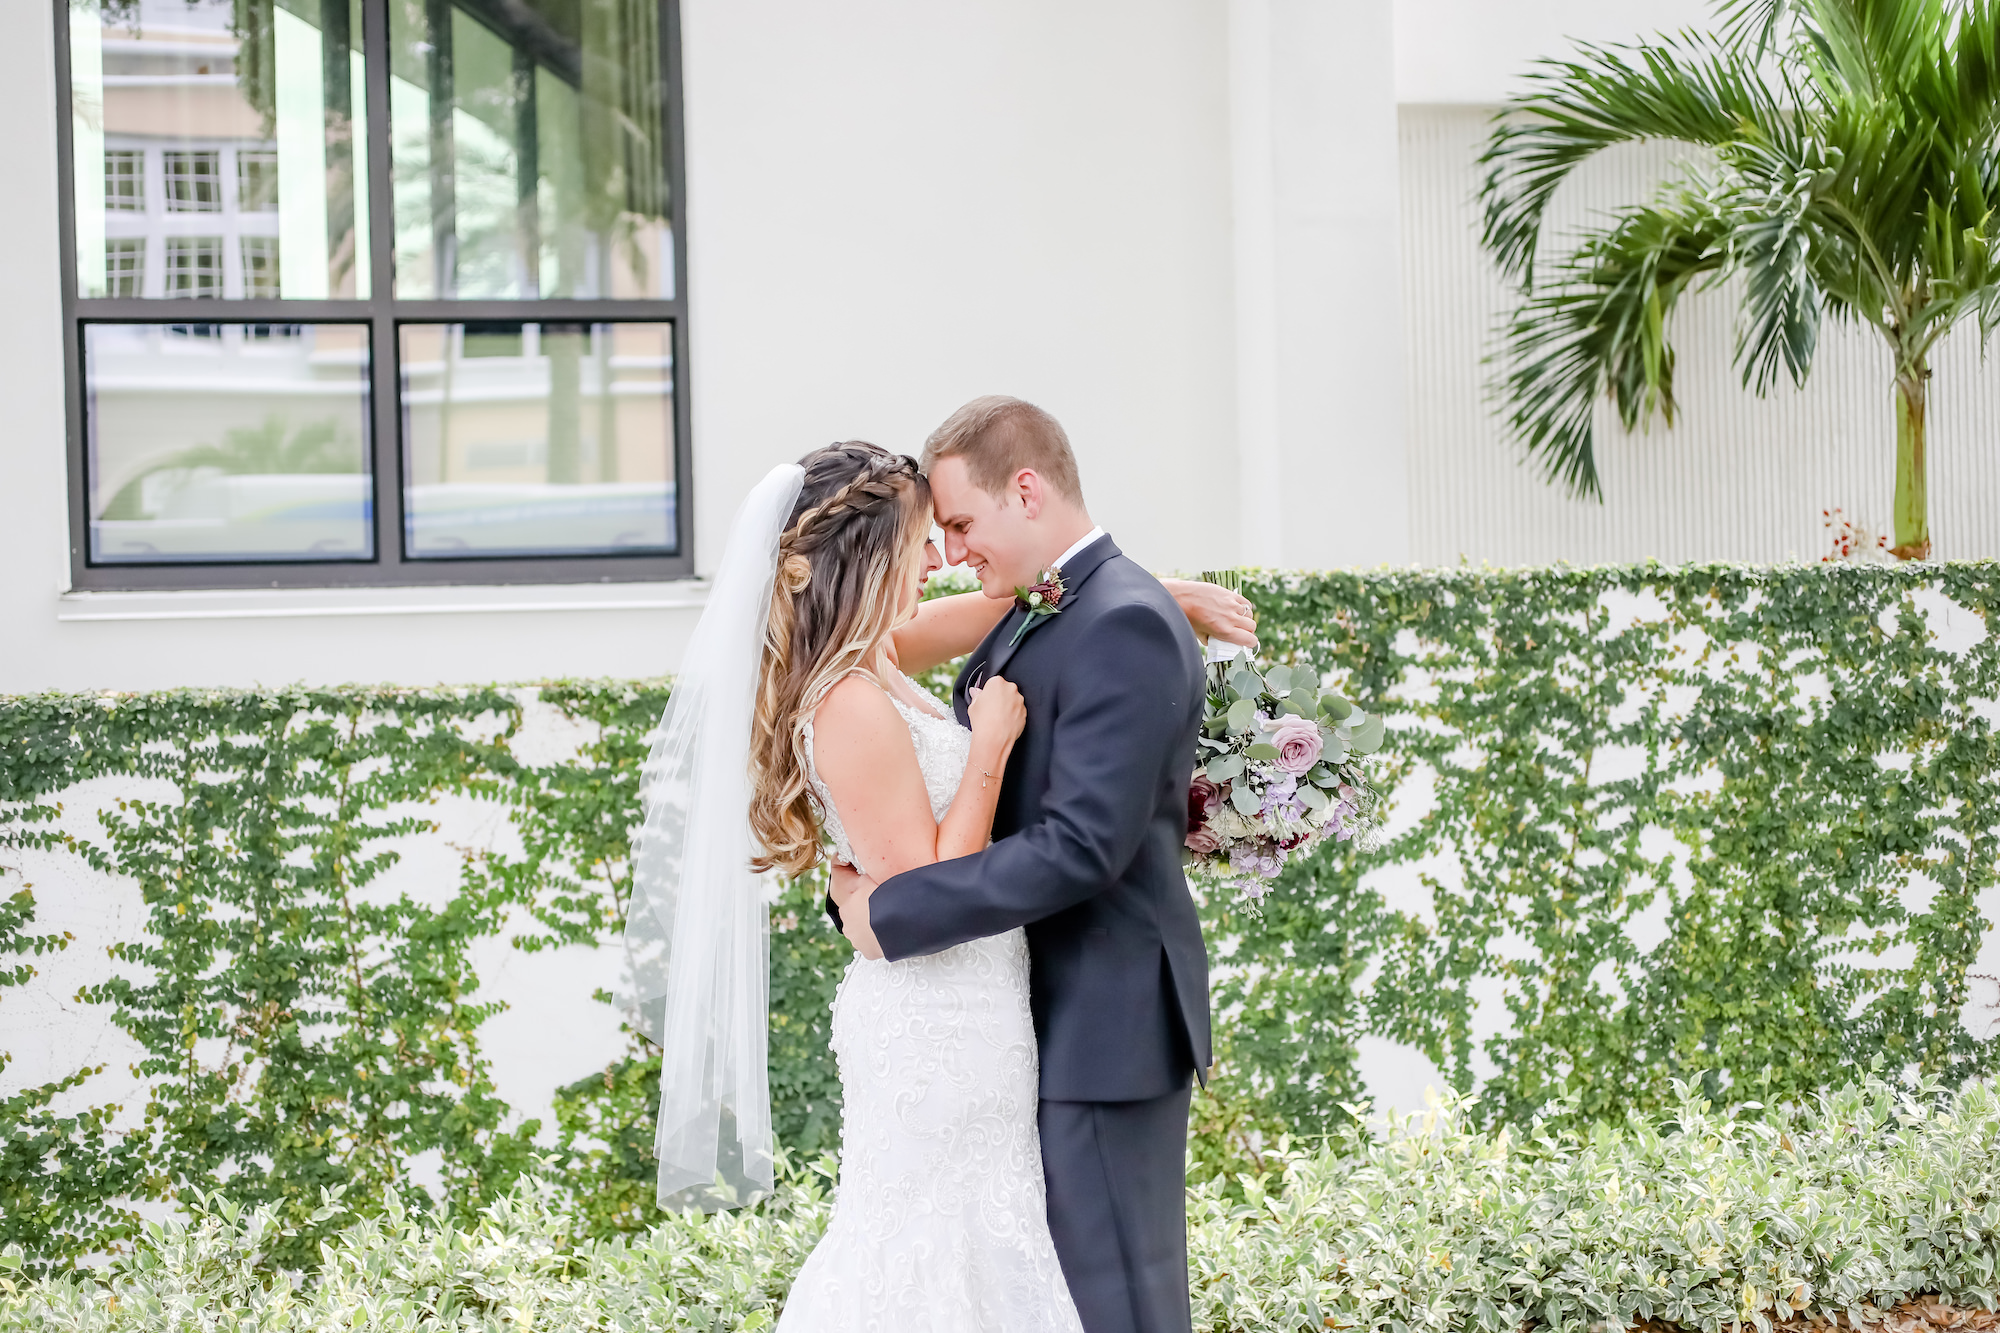 Downtown St. Pete Bride and Groom First Look Portrait, Bride Holding Mauve and Purple Floral Bouquet with Greenery   Florida Wedding Wedding Photographer Lifelong Photography Studio   Tampa Bay Wedding Venue The Birchwood